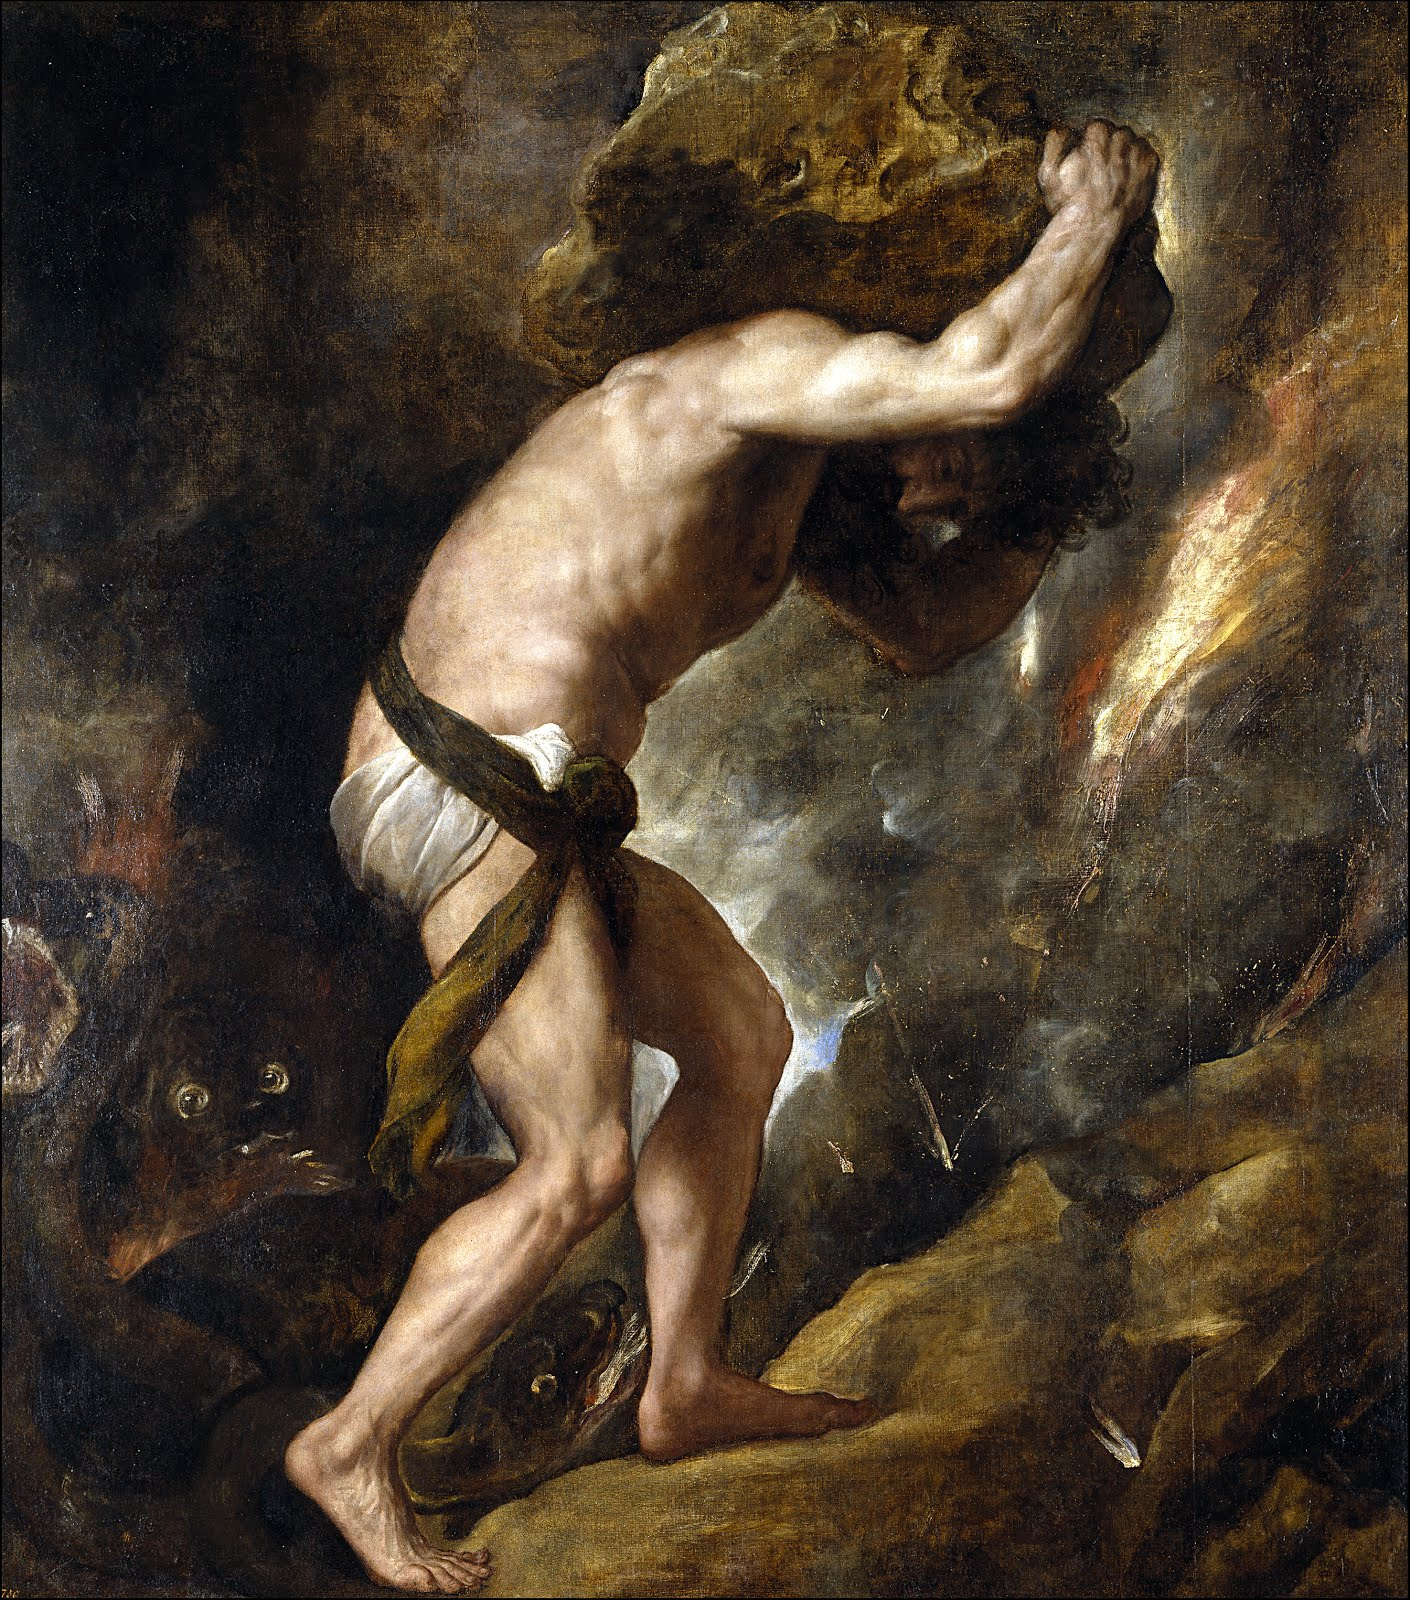 Sisyphus (by Titian, 1549) and his Revolt Against All Hope.